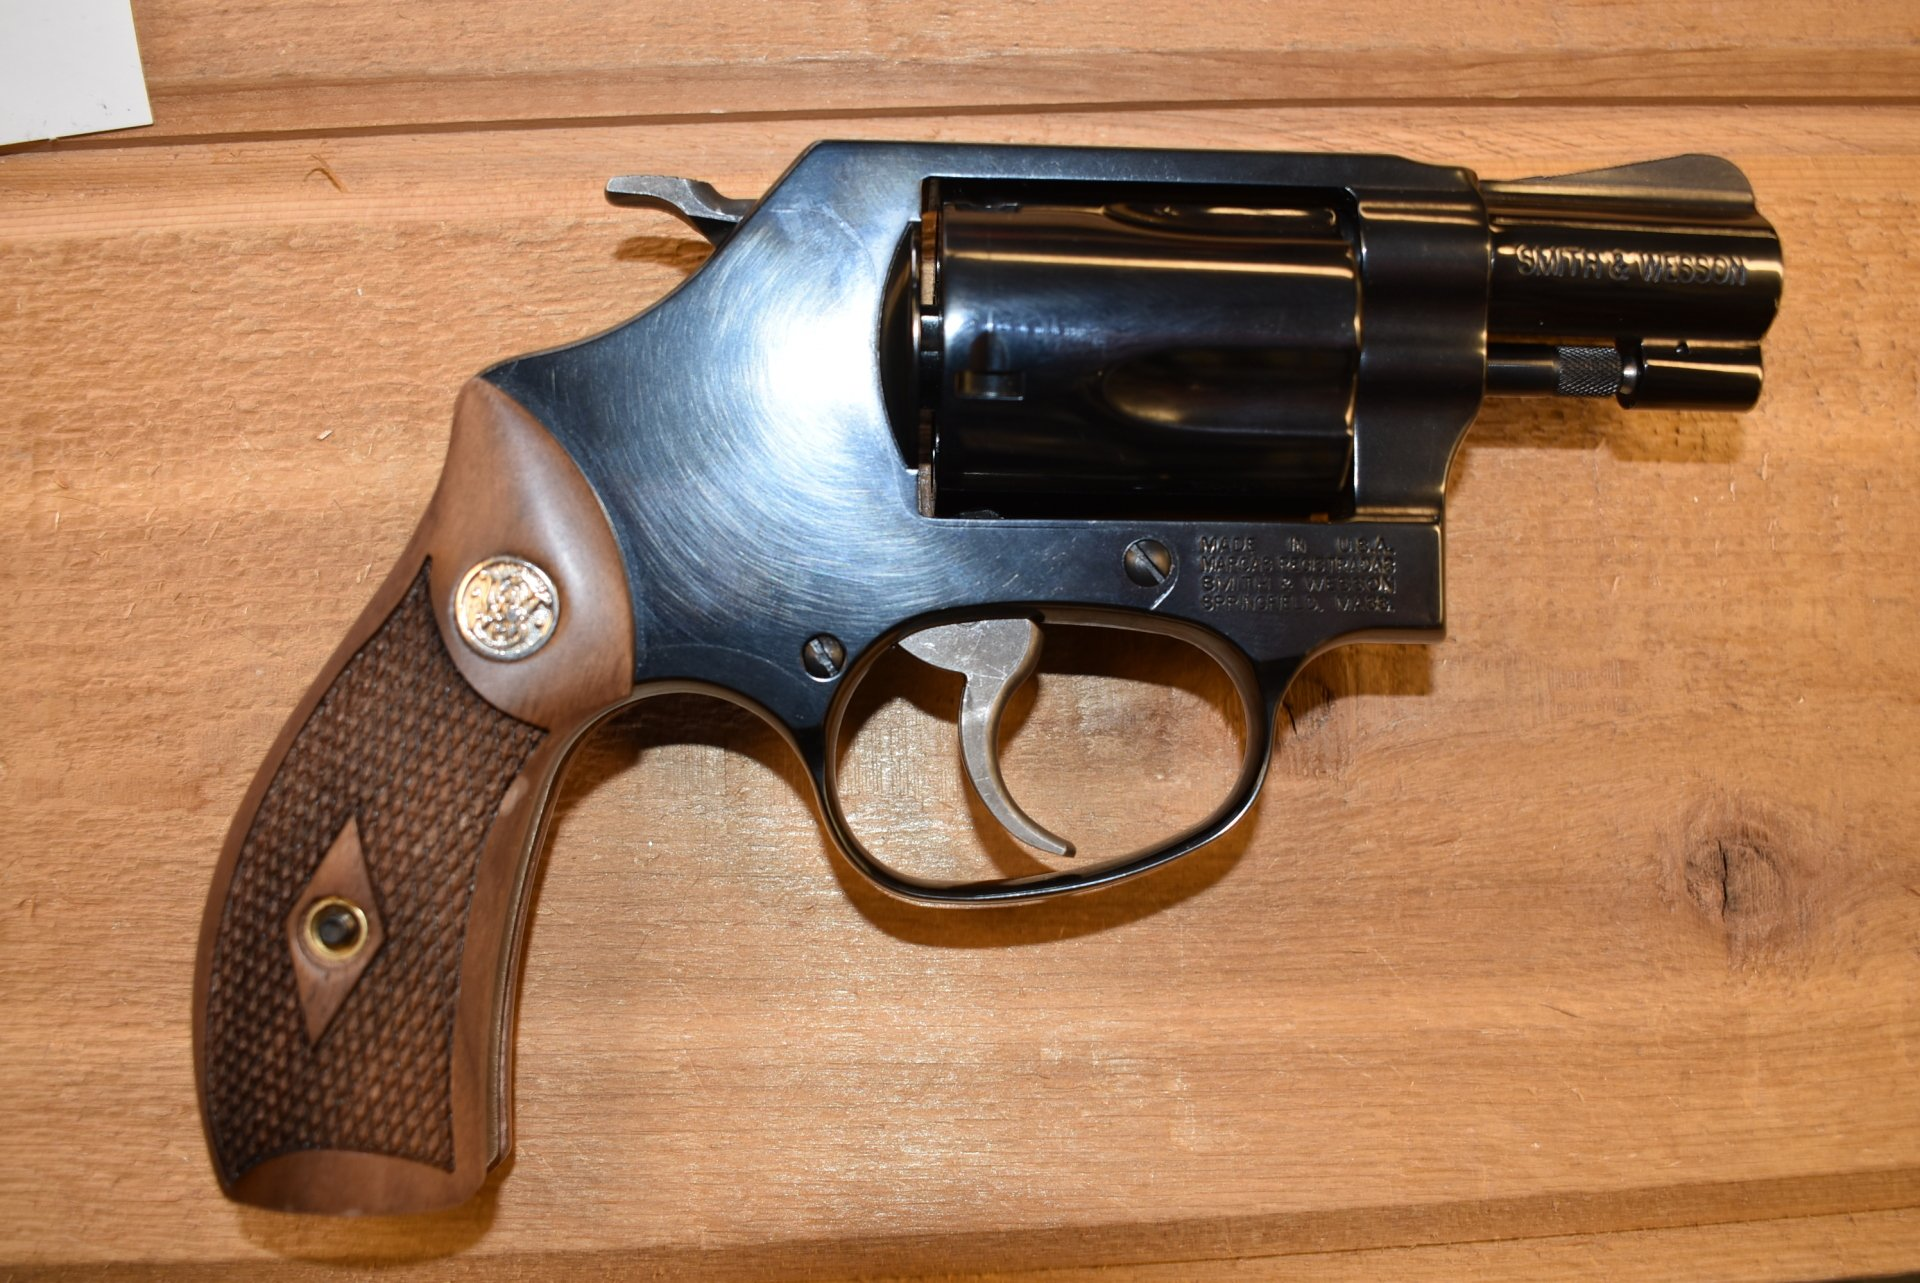 Smith & Wesson 36-10 38 Special